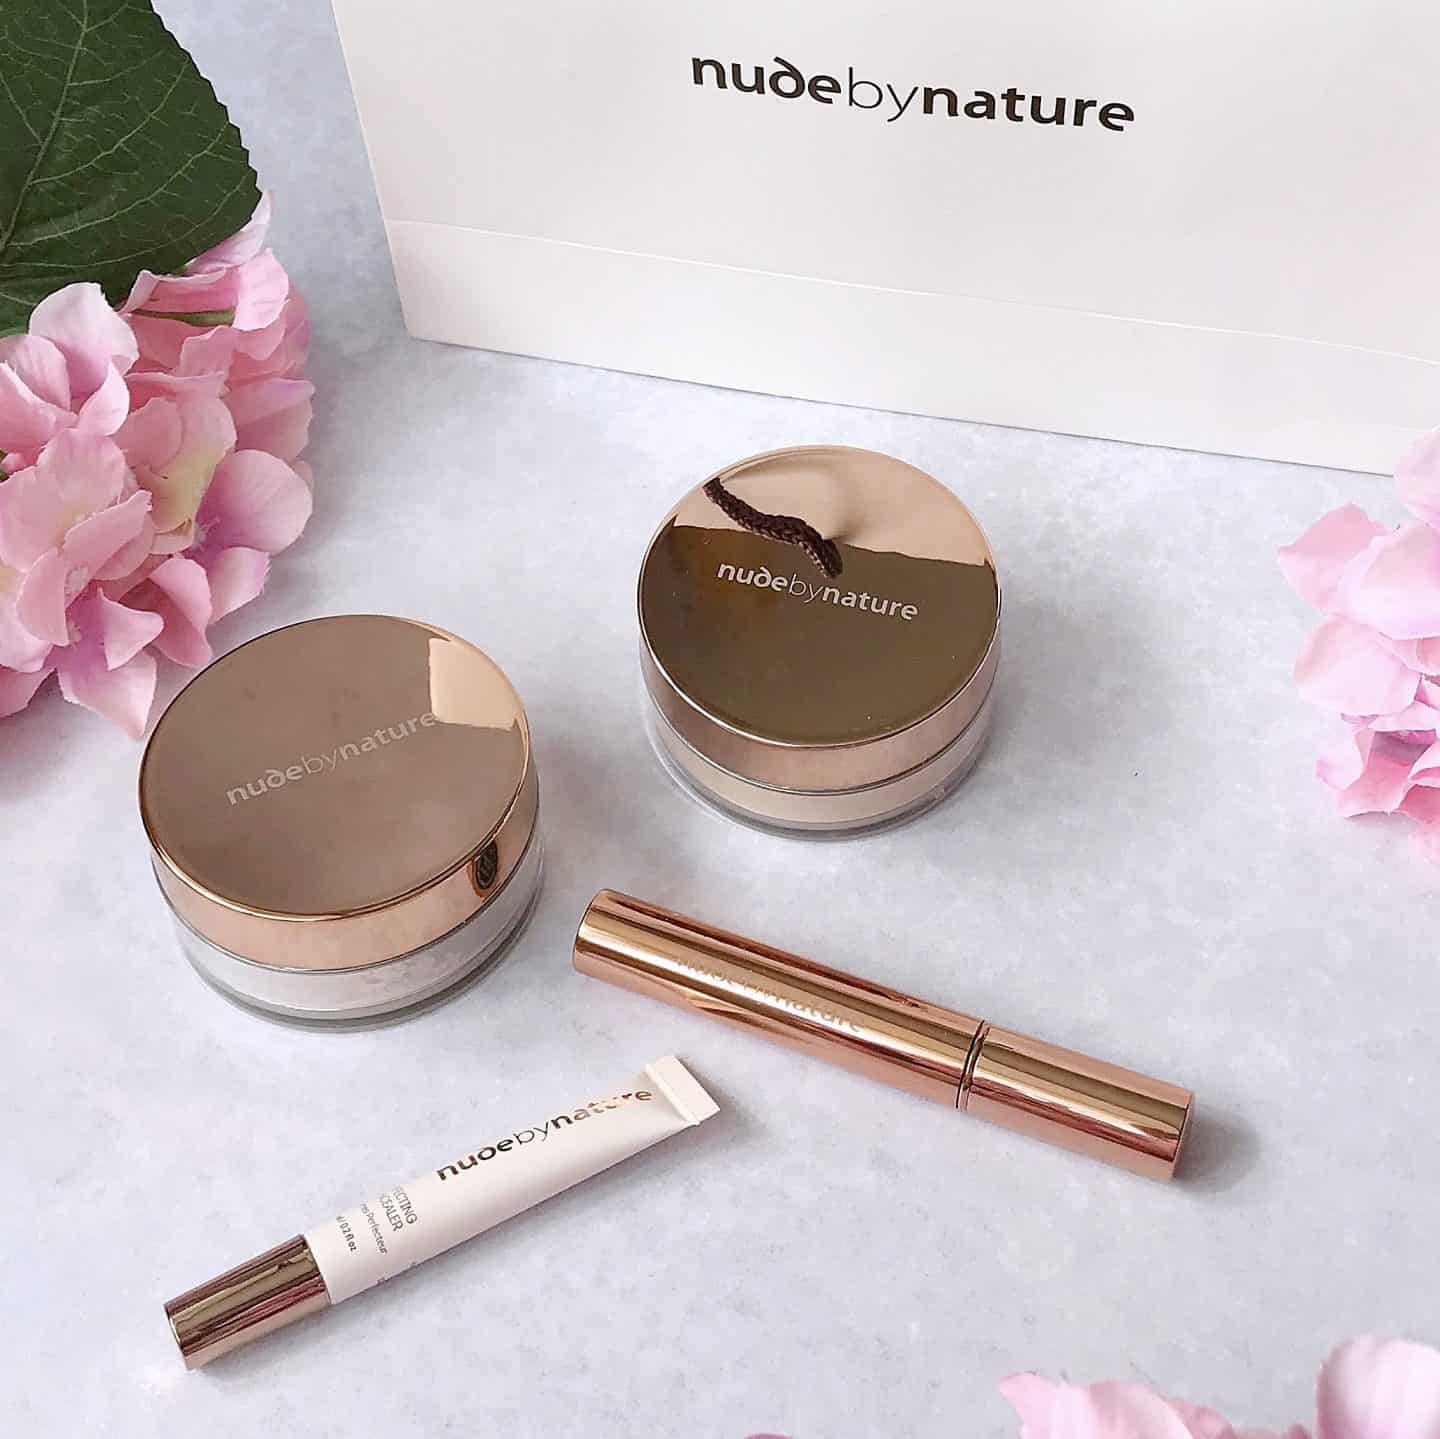 Nude by Nature Mineral Make-up Review